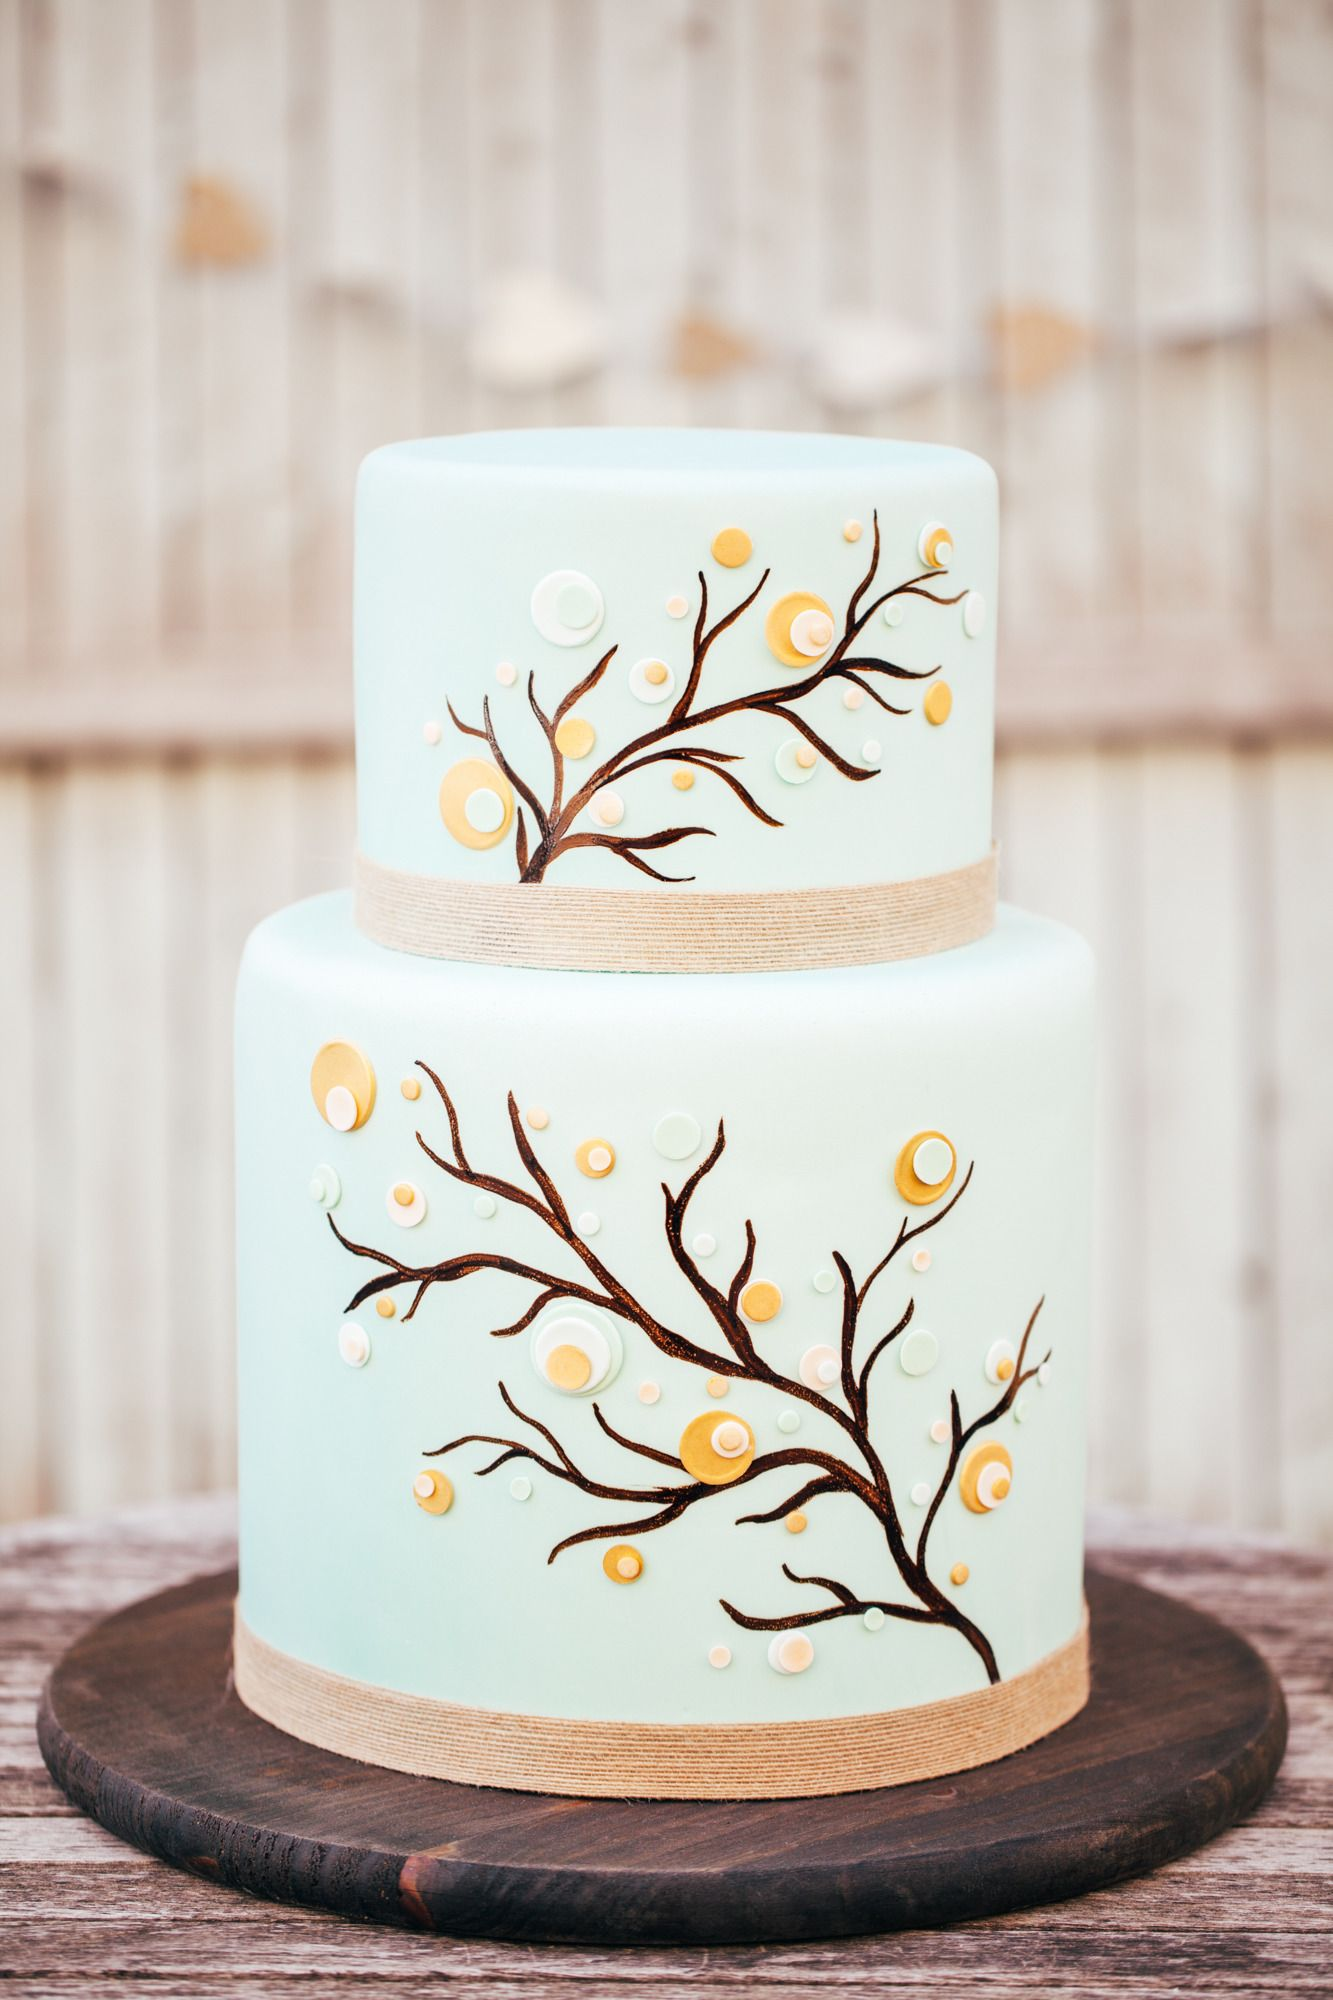 Playful wedding cake | Read More: http://www.stylemepretty.com/2014/08/18/diy-gold-heart-arrows-rustic-whimsical-wedding-inspiration/ | Photography: Studio Finch - www.studiofinch.com